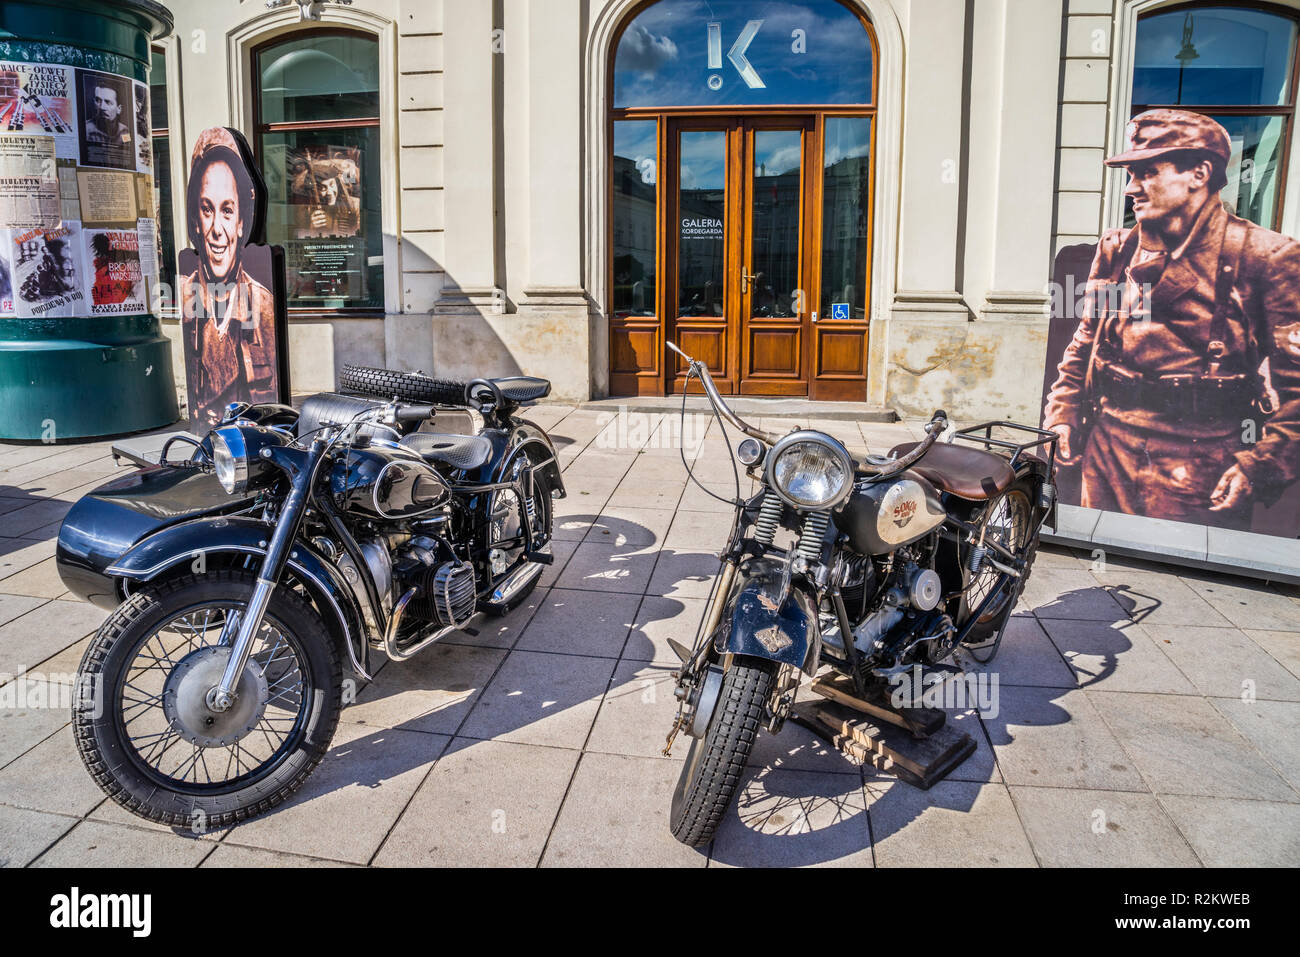 streets of Warsaw '44 historical exhibition of period paraphernalia duing the Warsaw Uprising, vintage BMW and Sokół 1000 motorcycles at the Potocki P - Stock Image